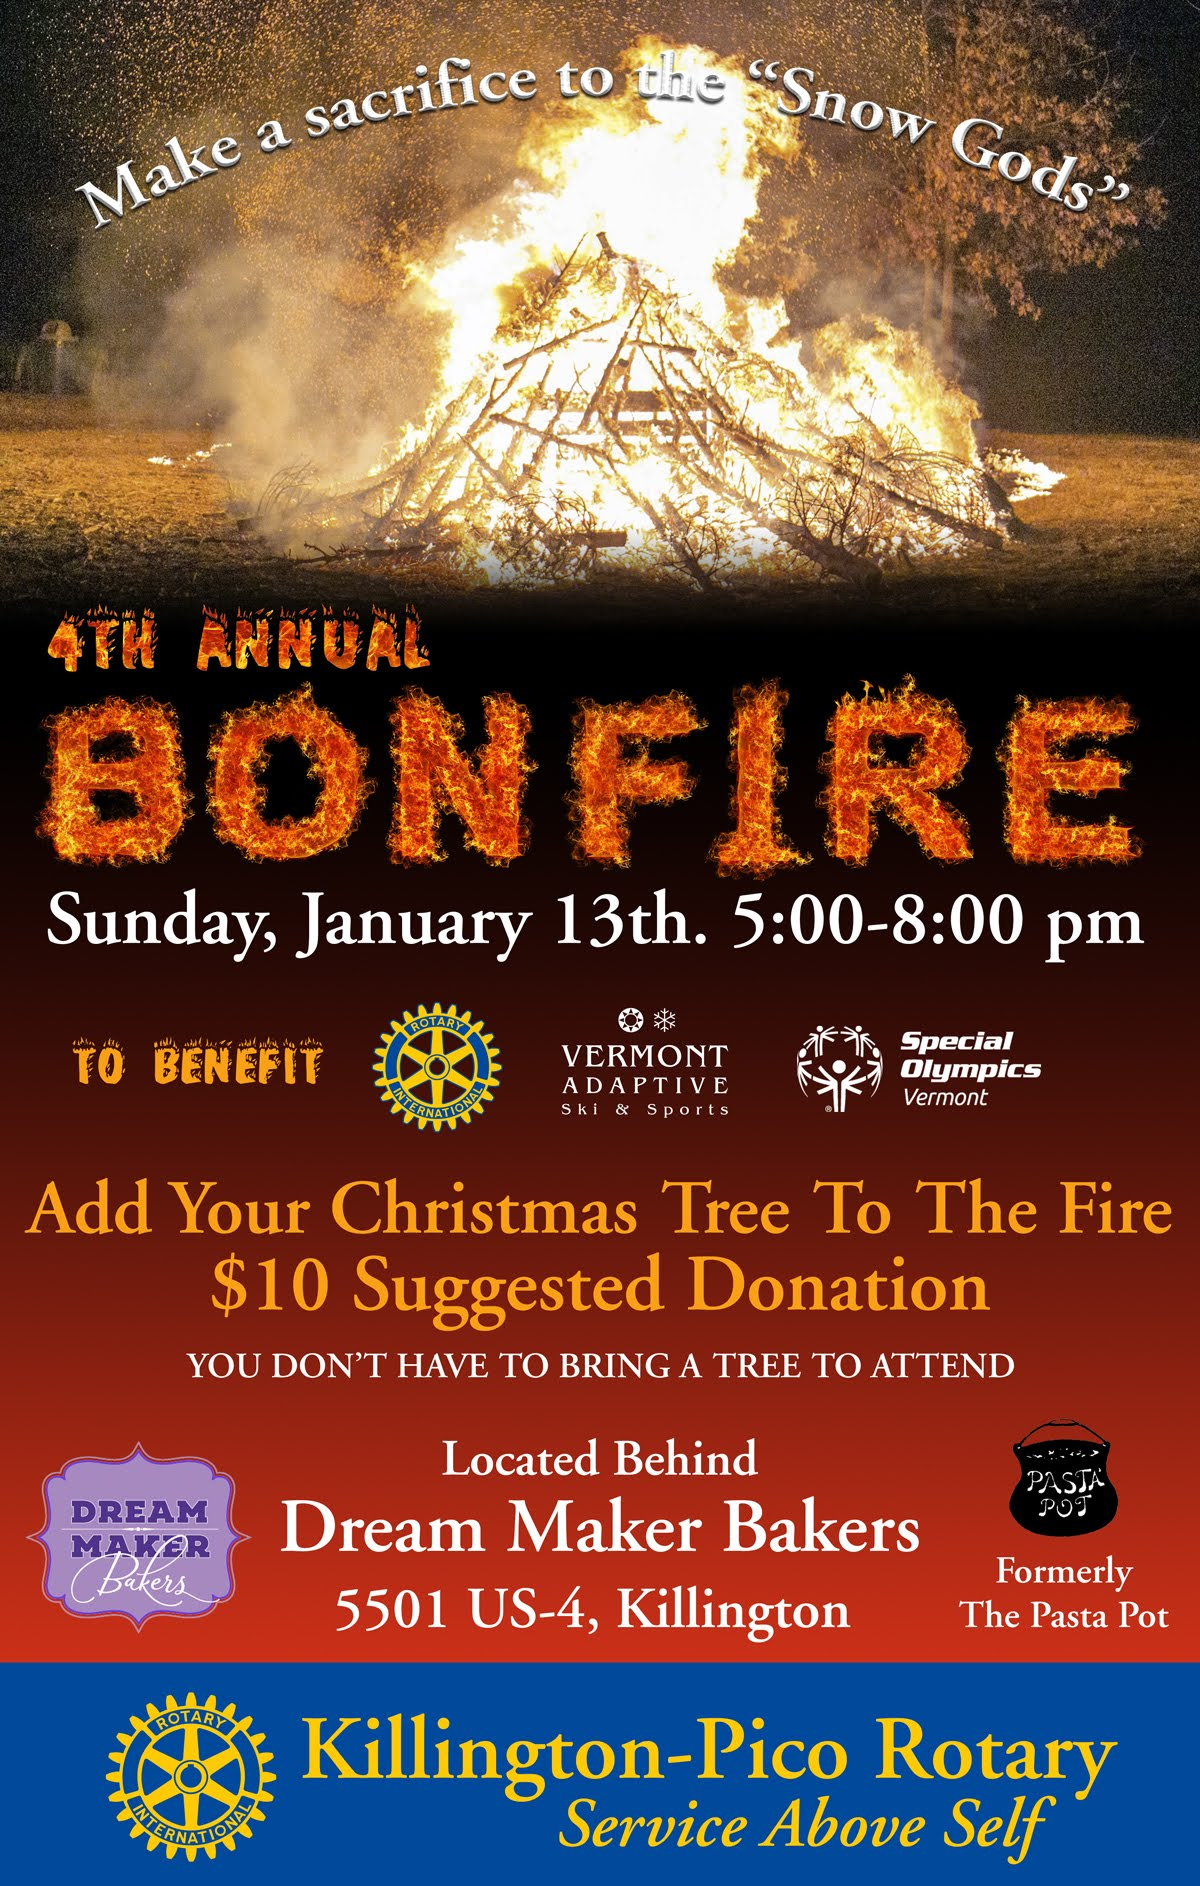 4th Annual Rotary Bonfire. January 13th. 5pm